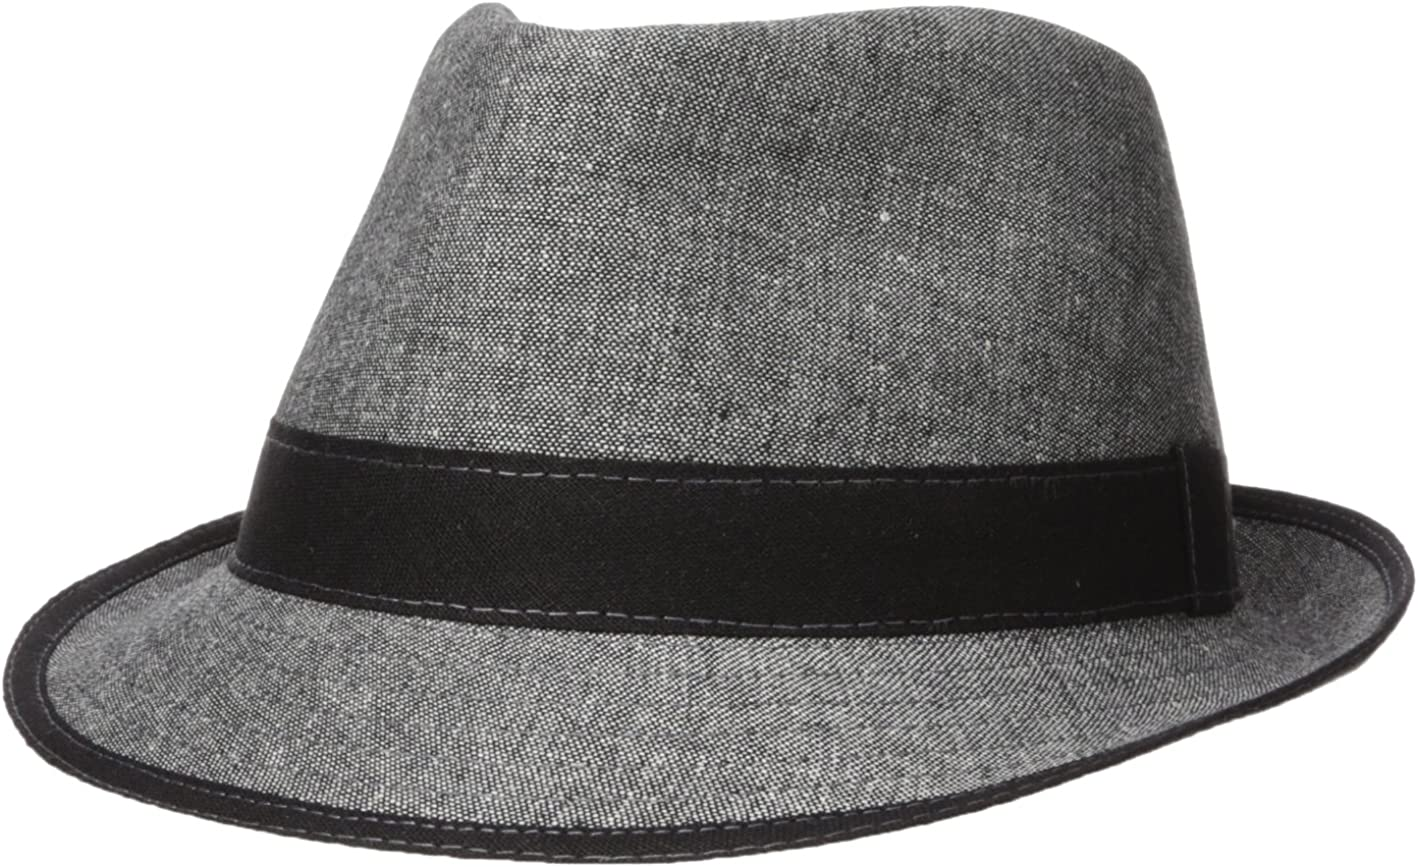 New product Arlington Mall Henschel Men's 100% Cotton Plaid with Fedora Self Band